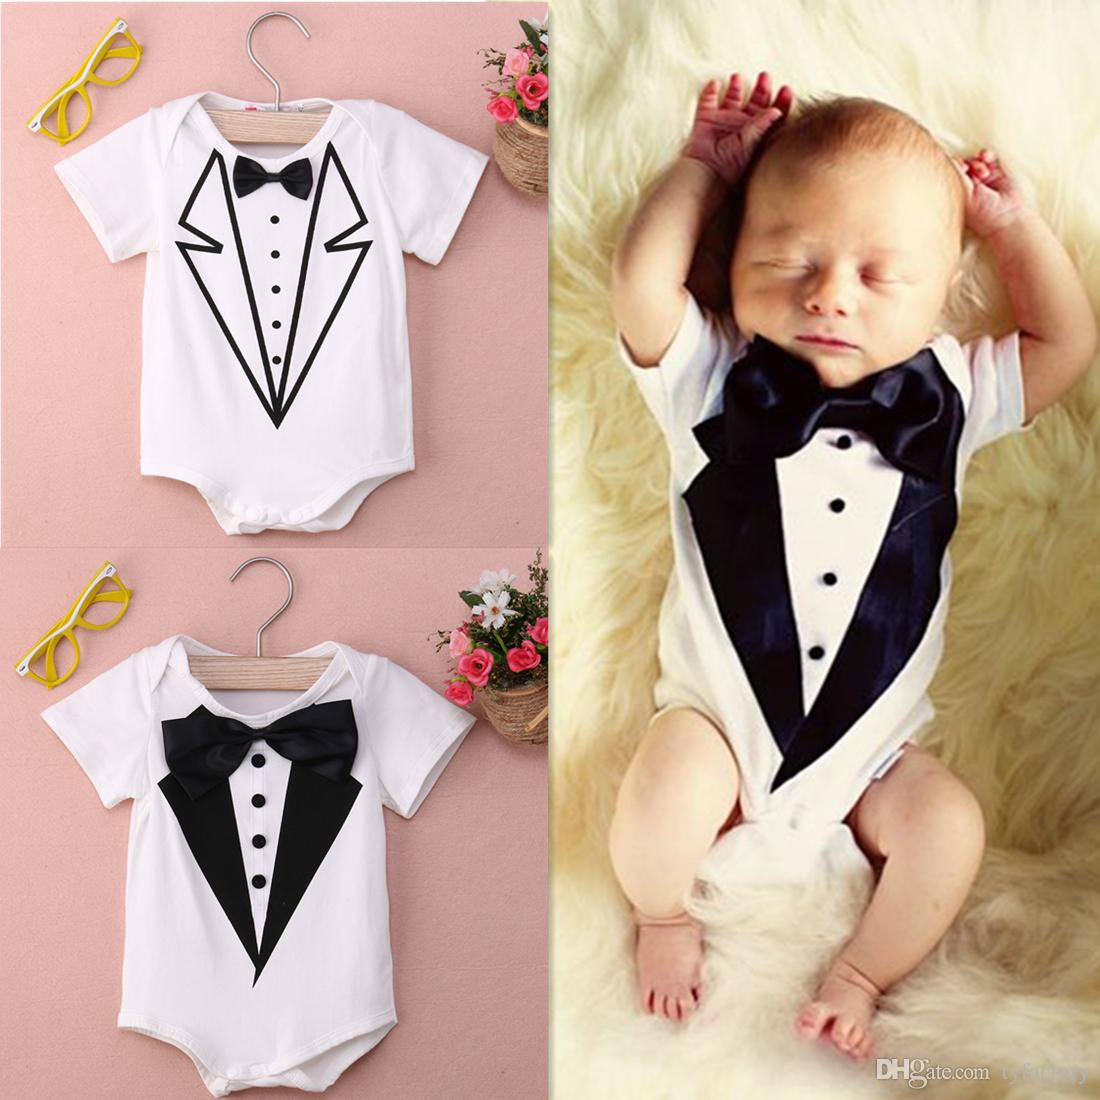 206fd8d26 2017 Summer Boy Clothing Infant Baby Gentleman Romper Bow Tie Onesies Short  Sleeves Babies Clothes Boy Jumpsuit 2 Styles Pattern 0-24M